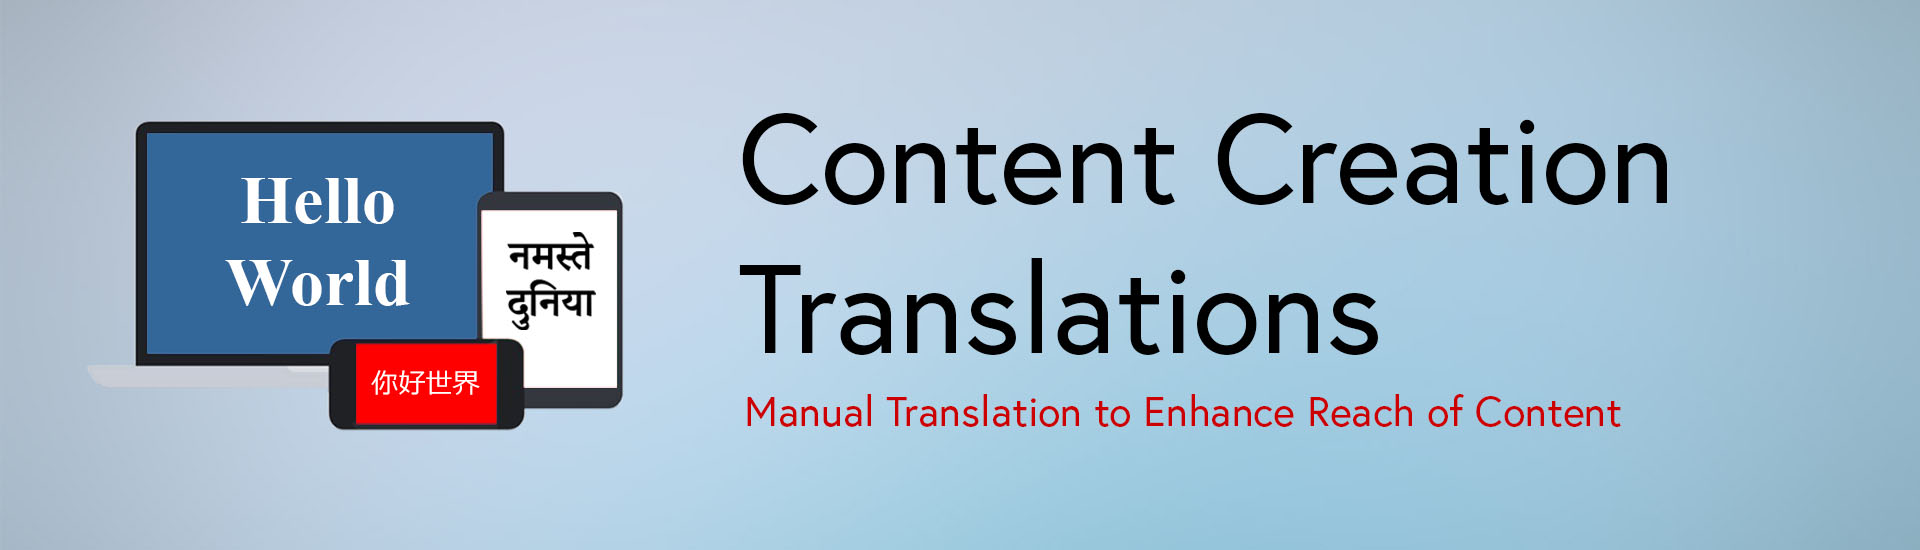 Content Creation - Translations